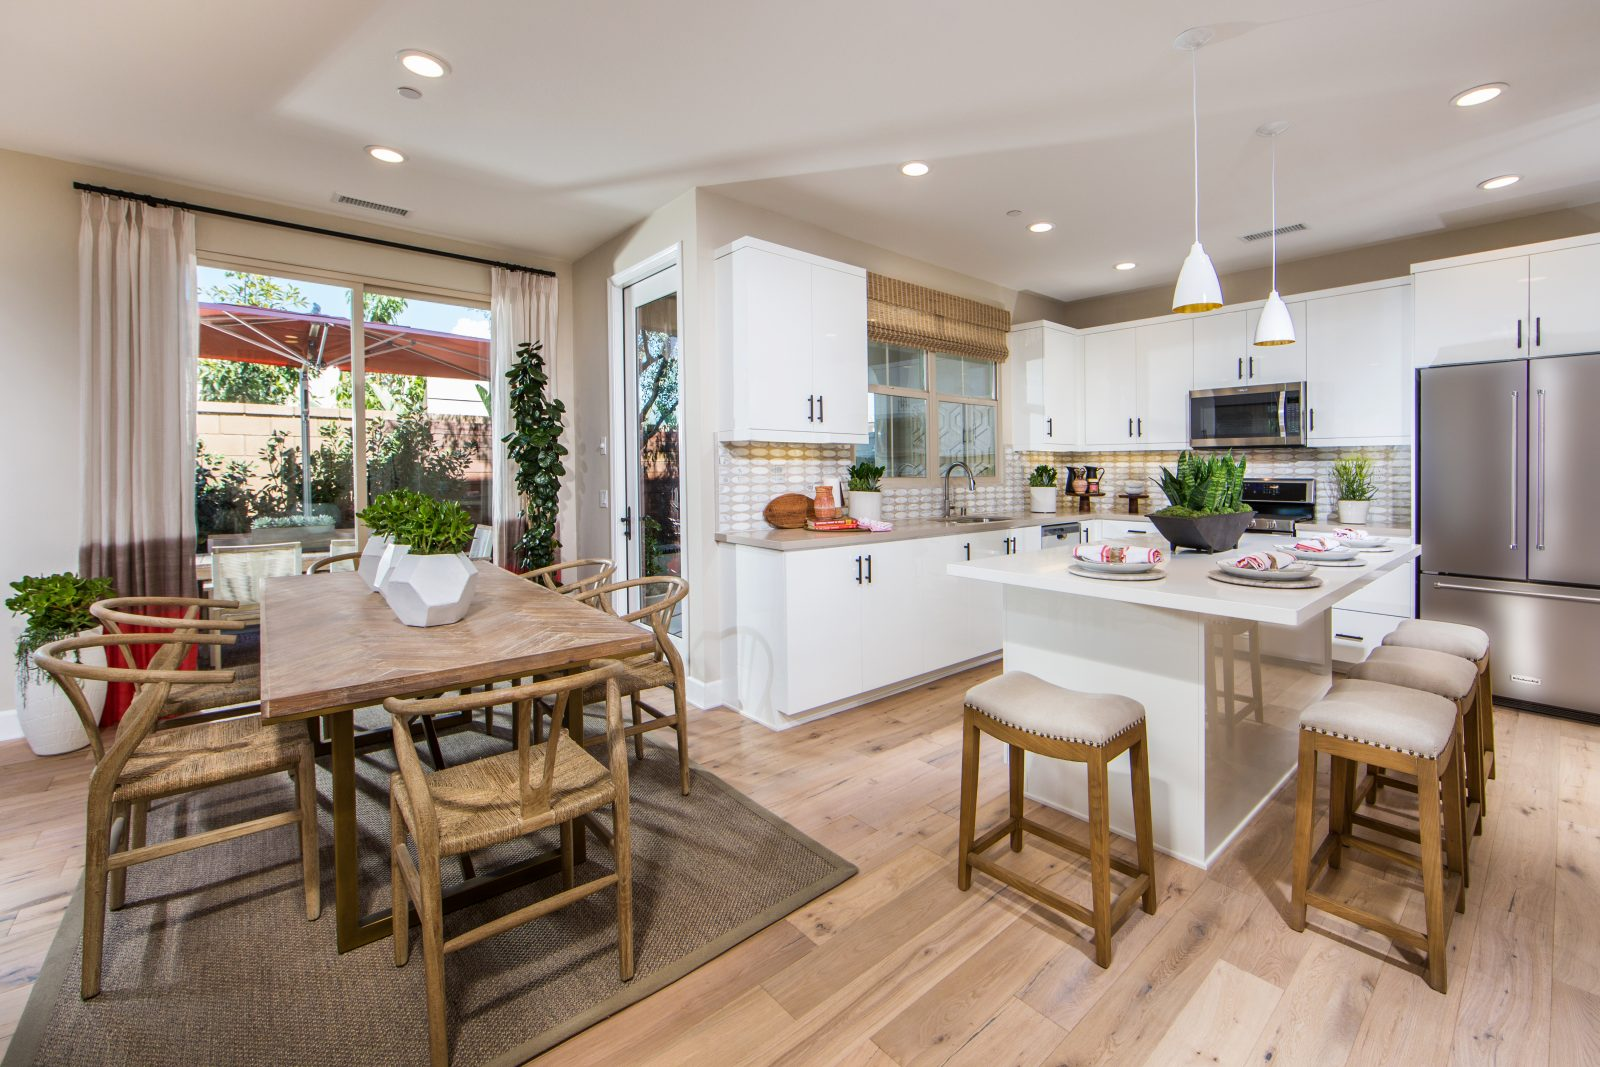 New Townhomes for Sale in Irvine CA